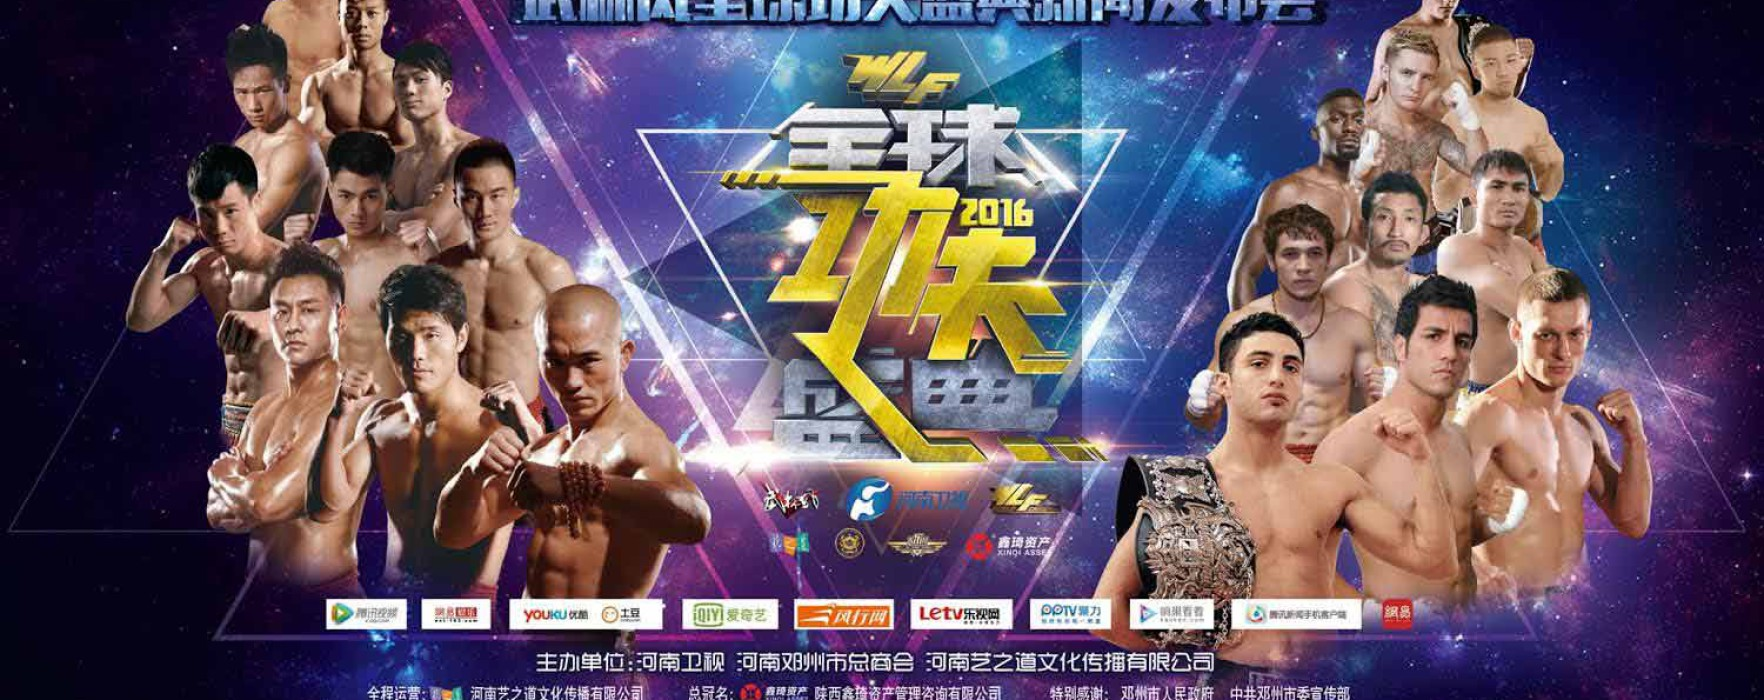 Card: Watch live the next Wu Lin Feng event featuring Petrosyan, Pakorn, Kulebin etc – Shanghai – 23/01/2016